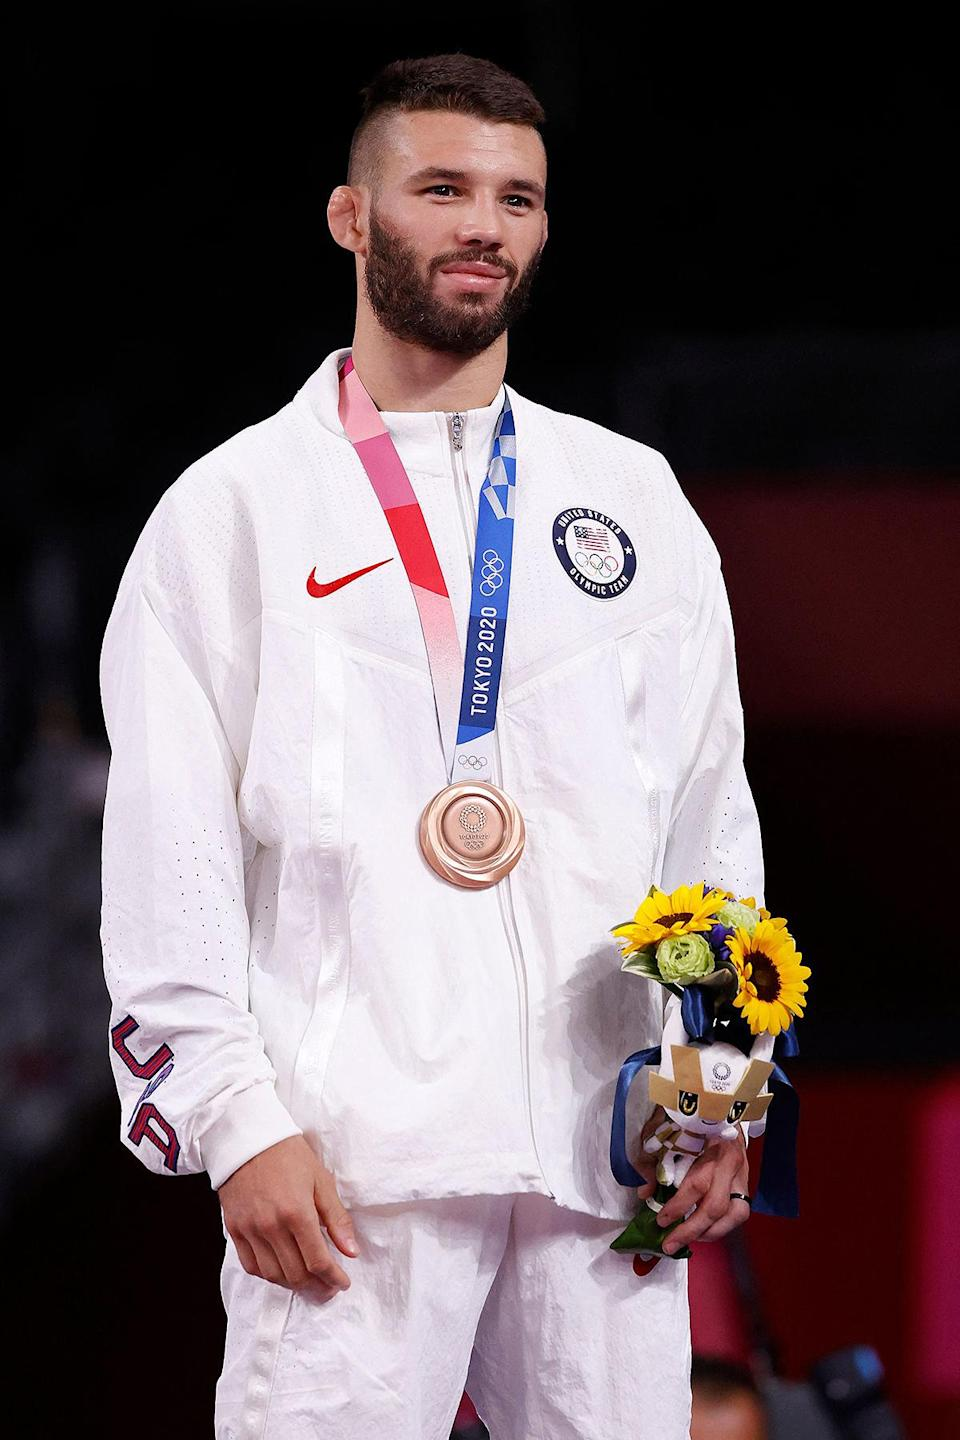 <p>Biography: 27 years old</p> <p>Event: Men's 57kg wrestling</p>